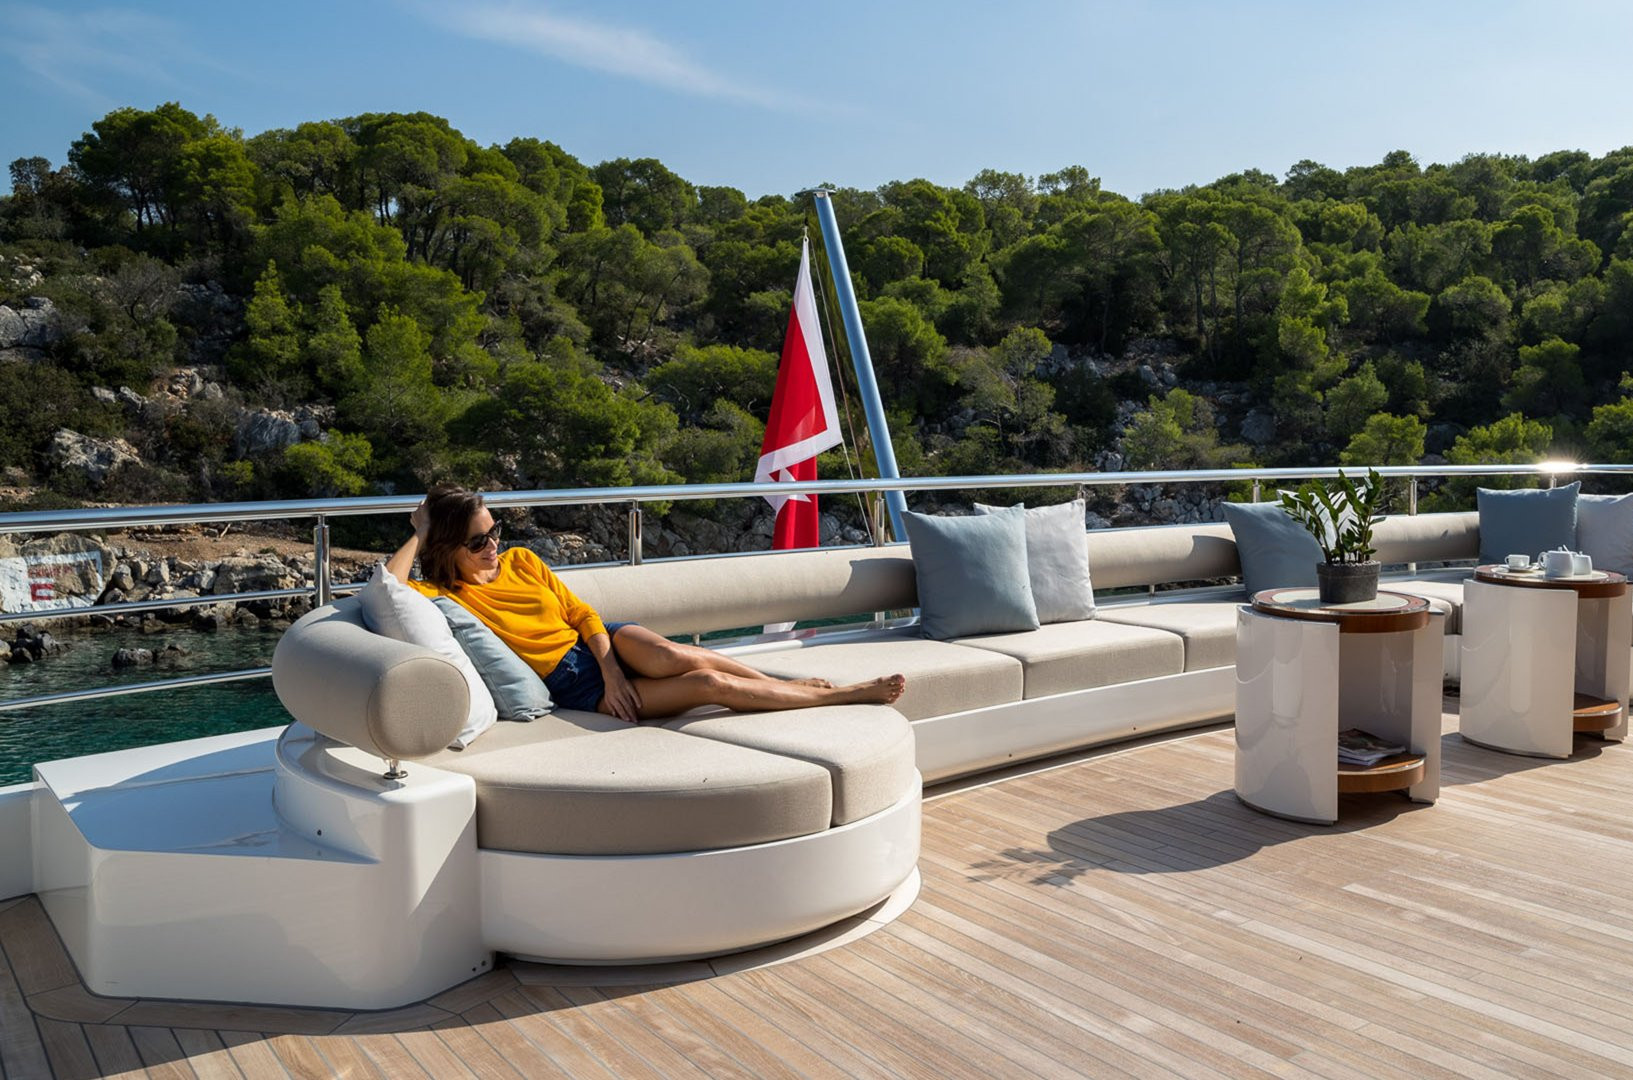 Yacht's aft deck lounging